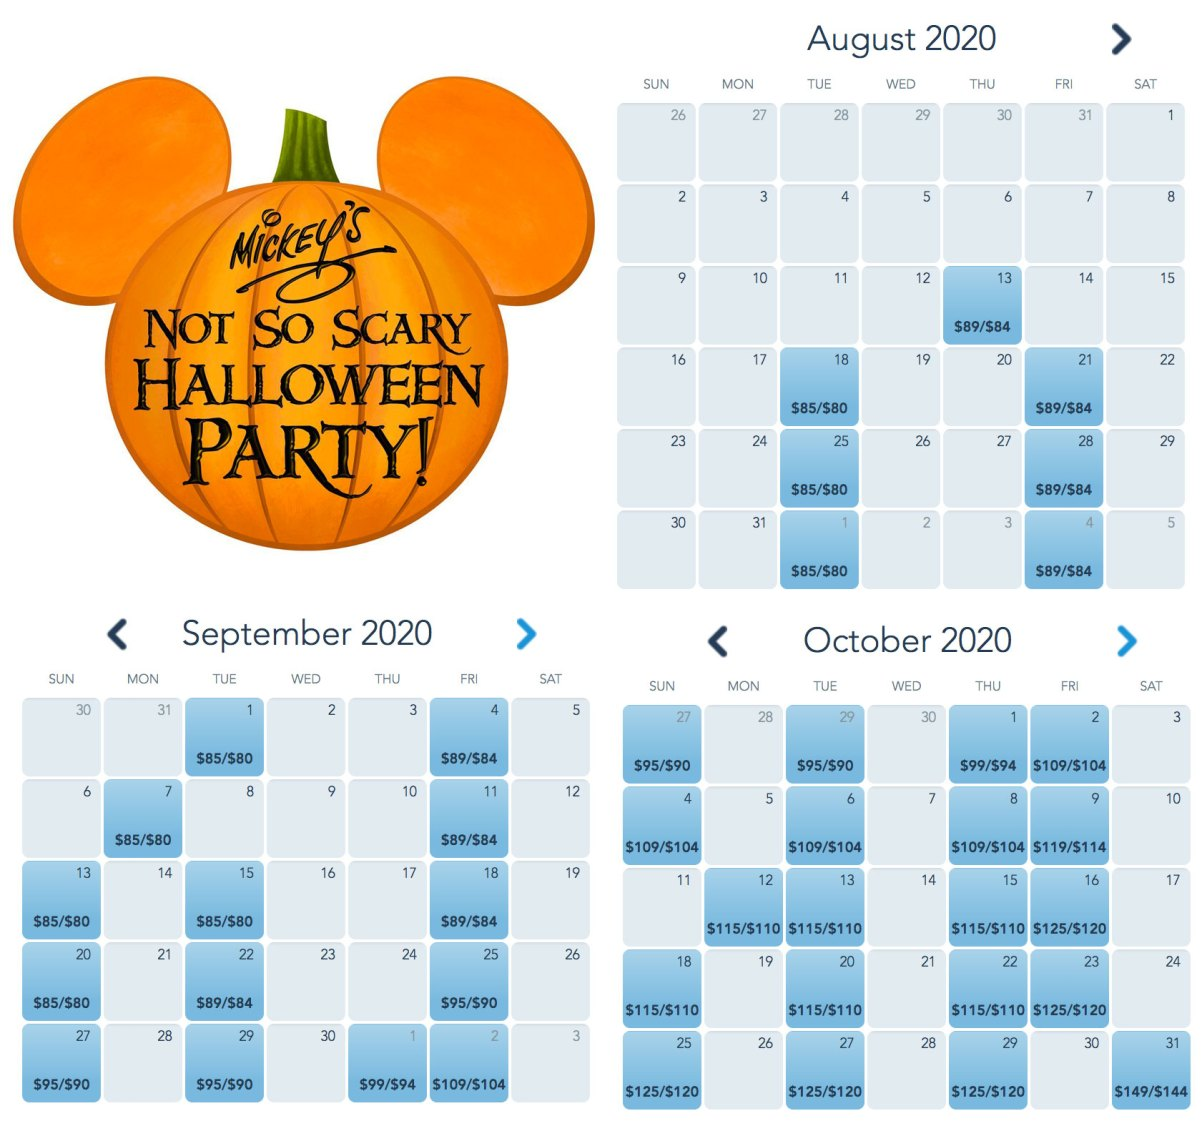 Mickeys Not So Scary Halloween Dates 2020 Tickets Now on Sale for 2020 Mickey's Not So Scary Halloween Party